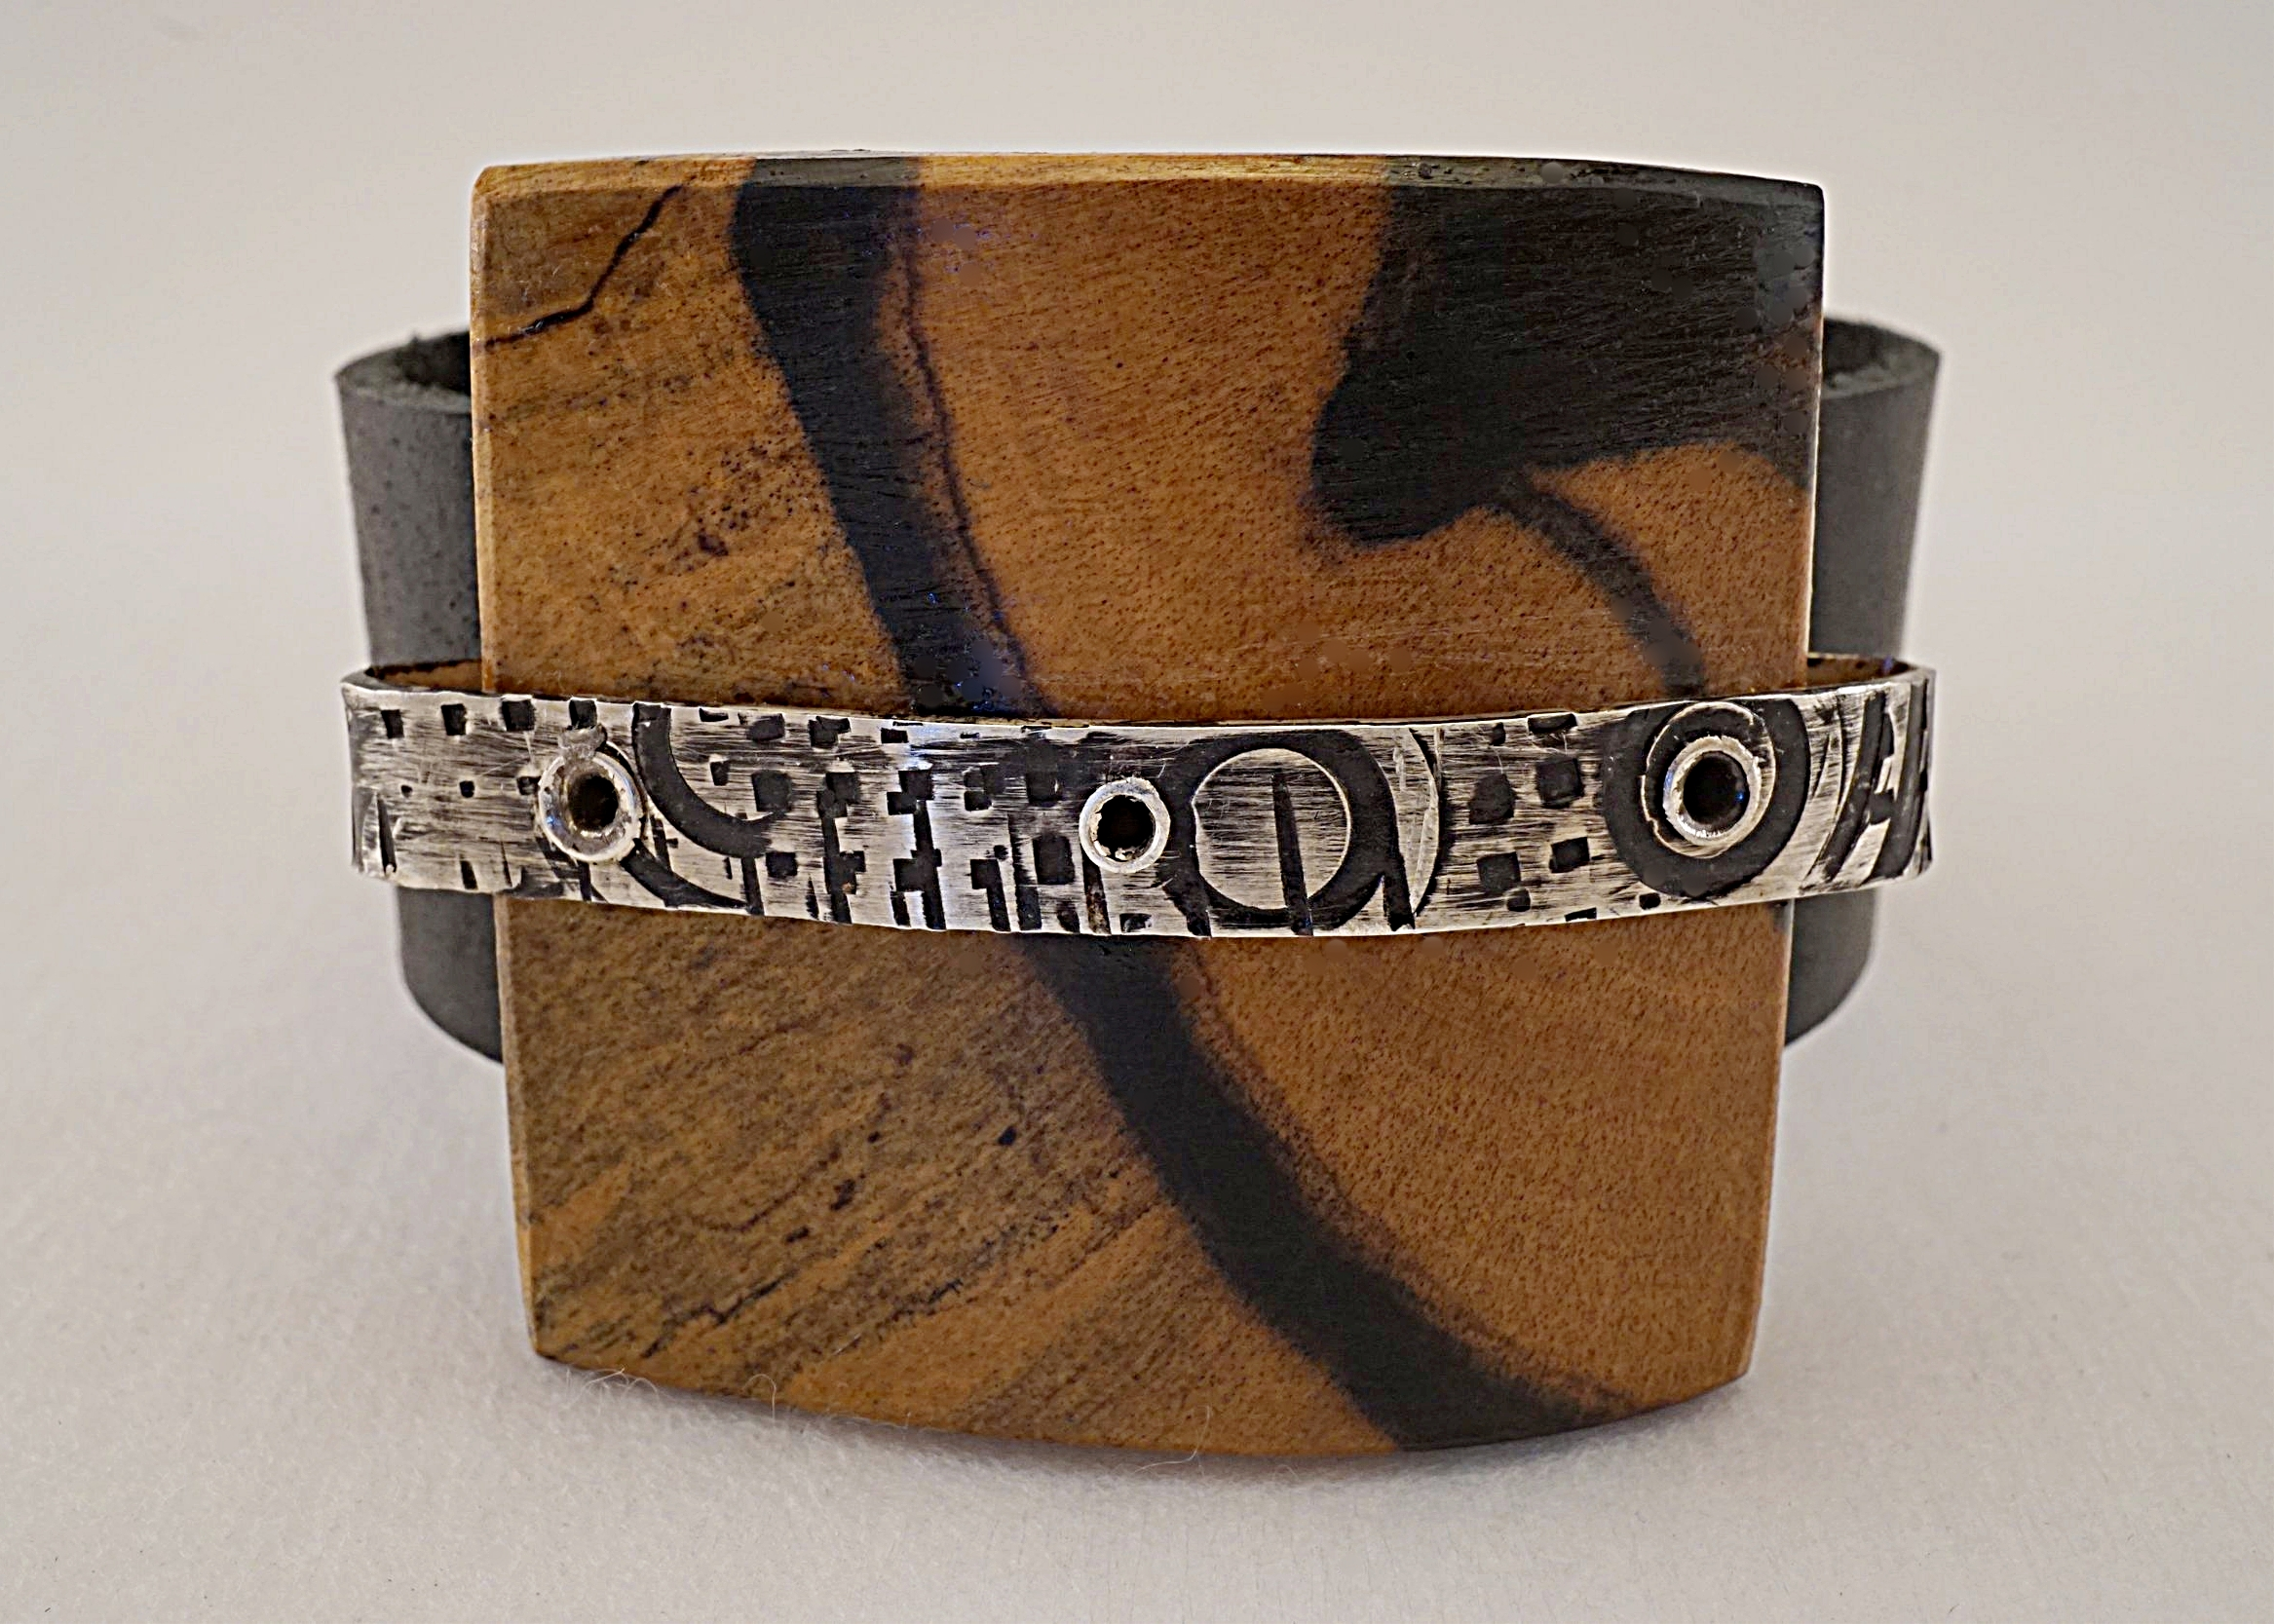 Hand carved black and white ebony wood with hand stamped sterling silver on black leather